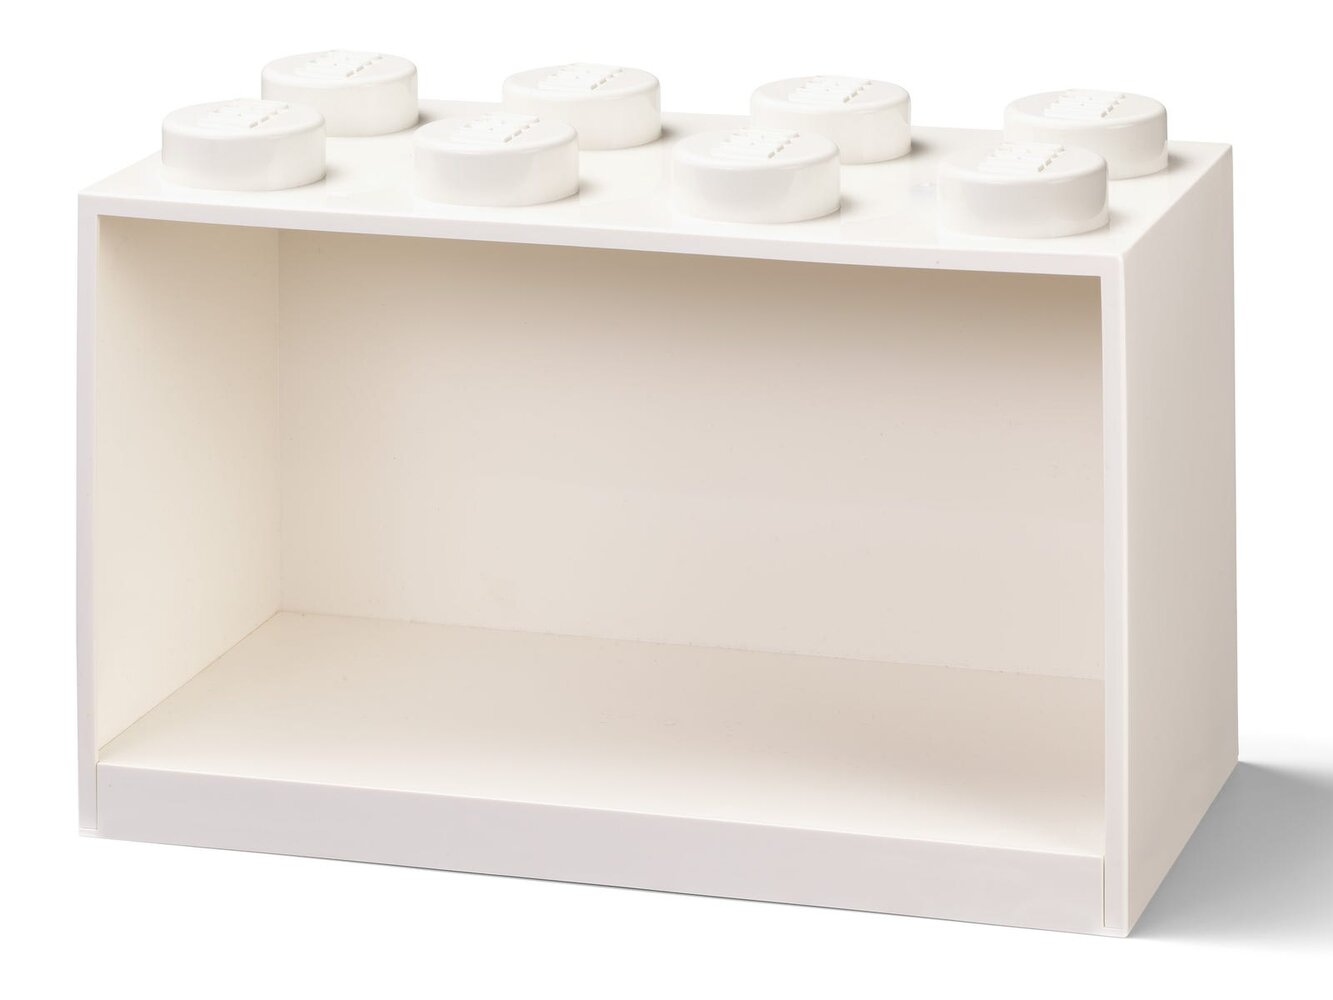 Brick Shelf 8 Knobs (White)